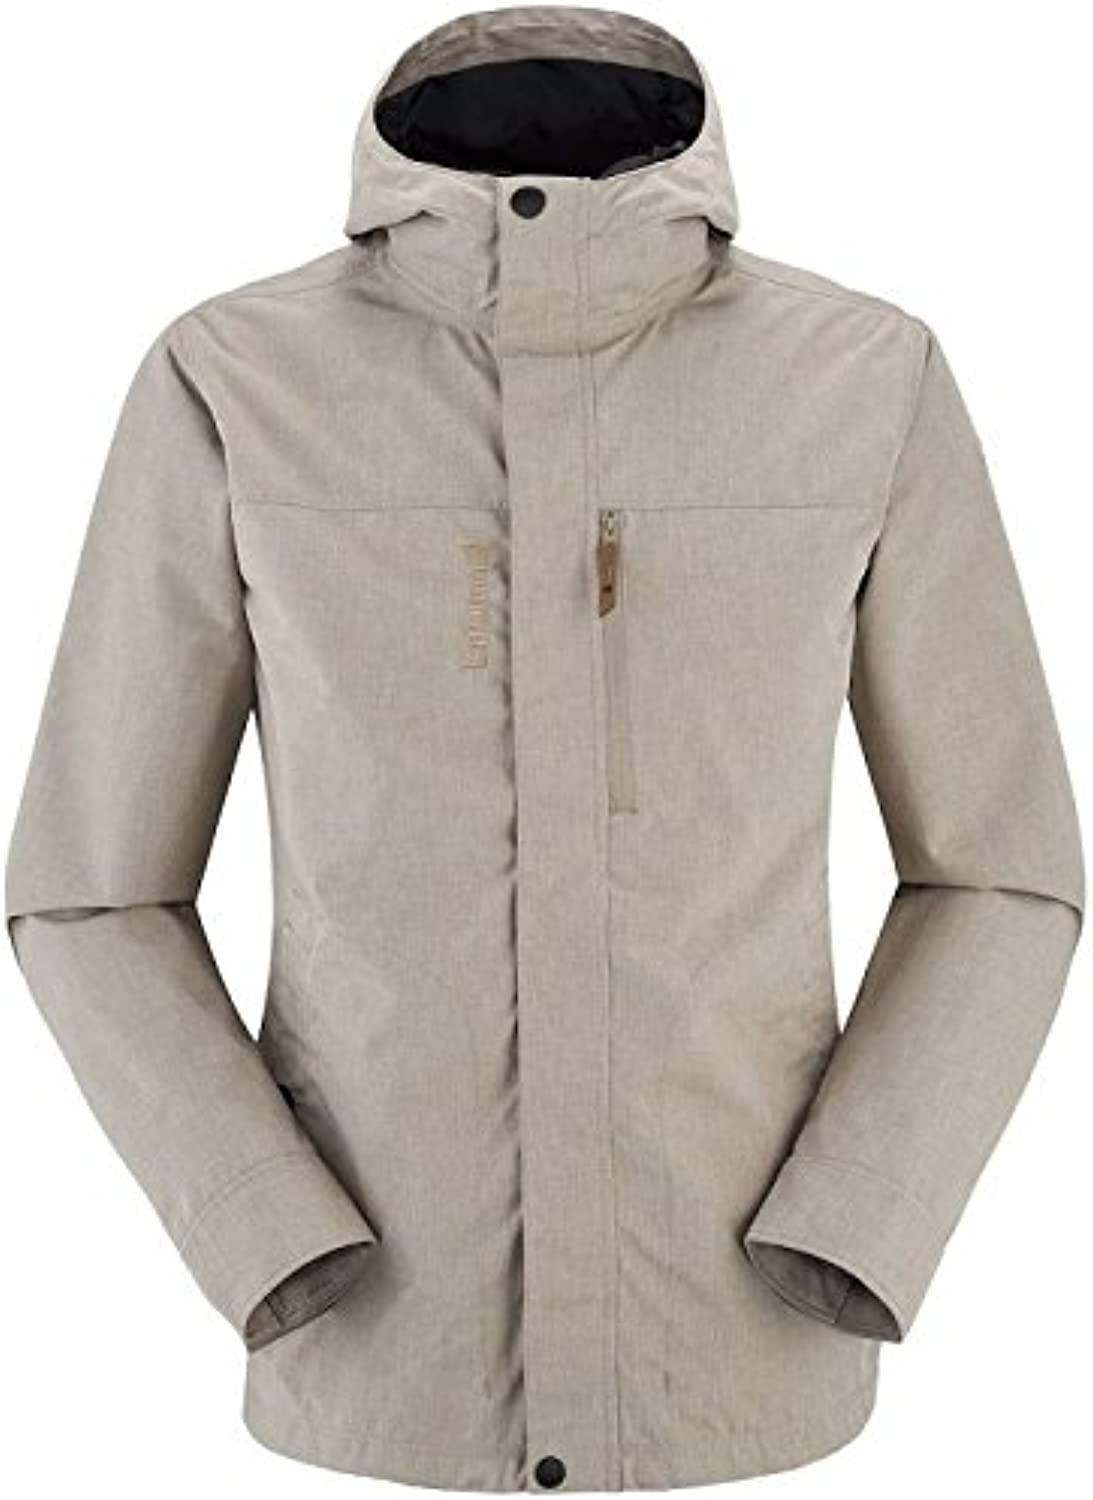 Lafuma Traveller JKT Men's Jacket